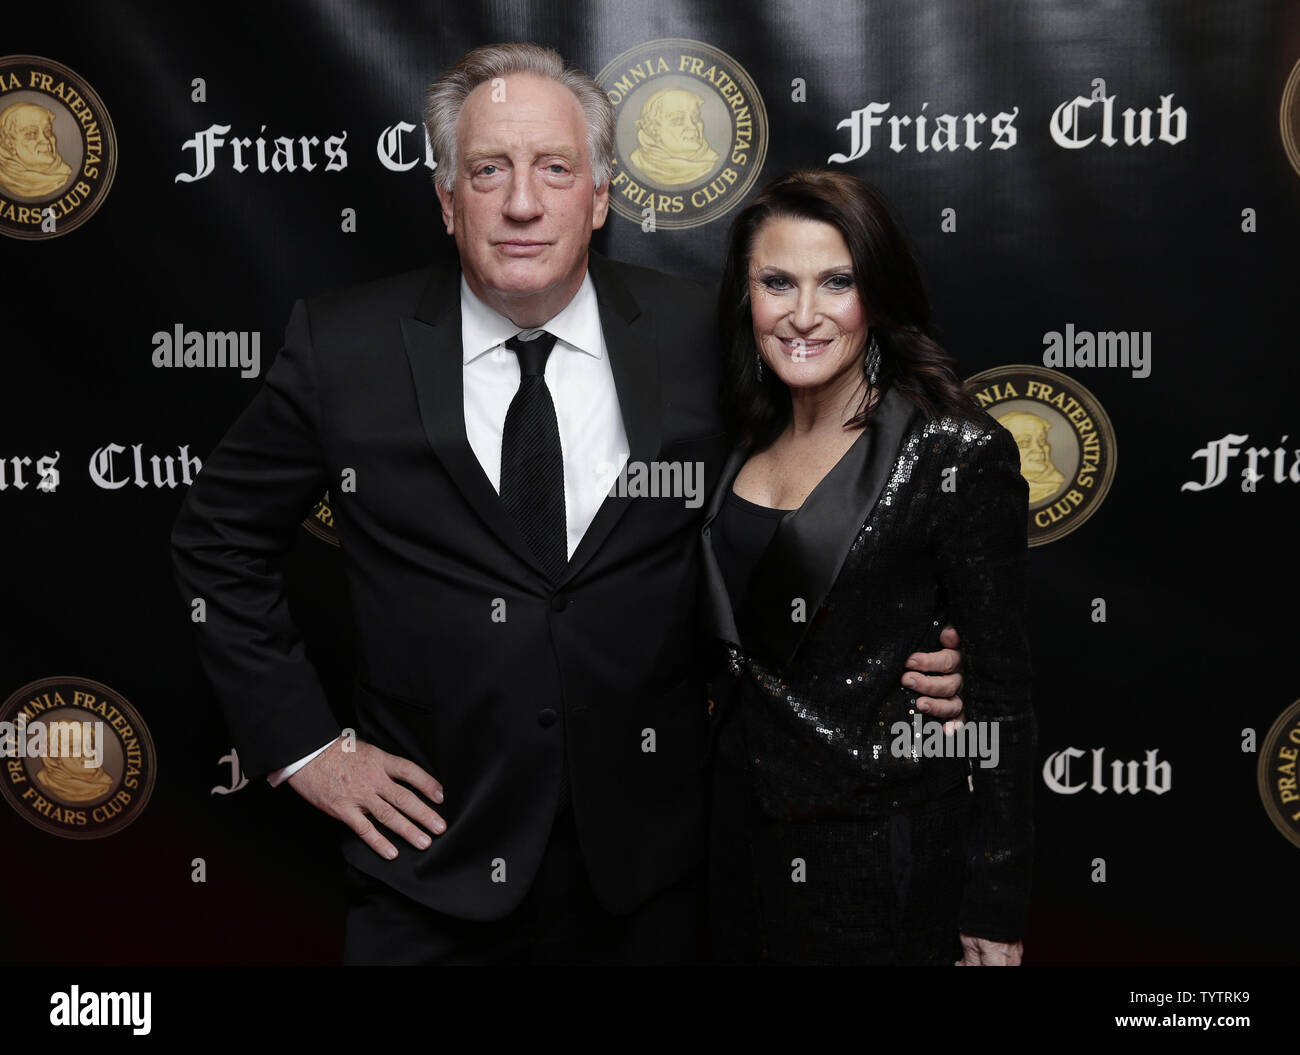 Alan Zweibel arrives on the red carpet when the Friar's Club Honors Billy Crystal with their Entertainment Icon Award at The Ziegfeld Ballroom on November 12, 2018 in New York City.       Photo by John Angelillo/UPI - Stock Image